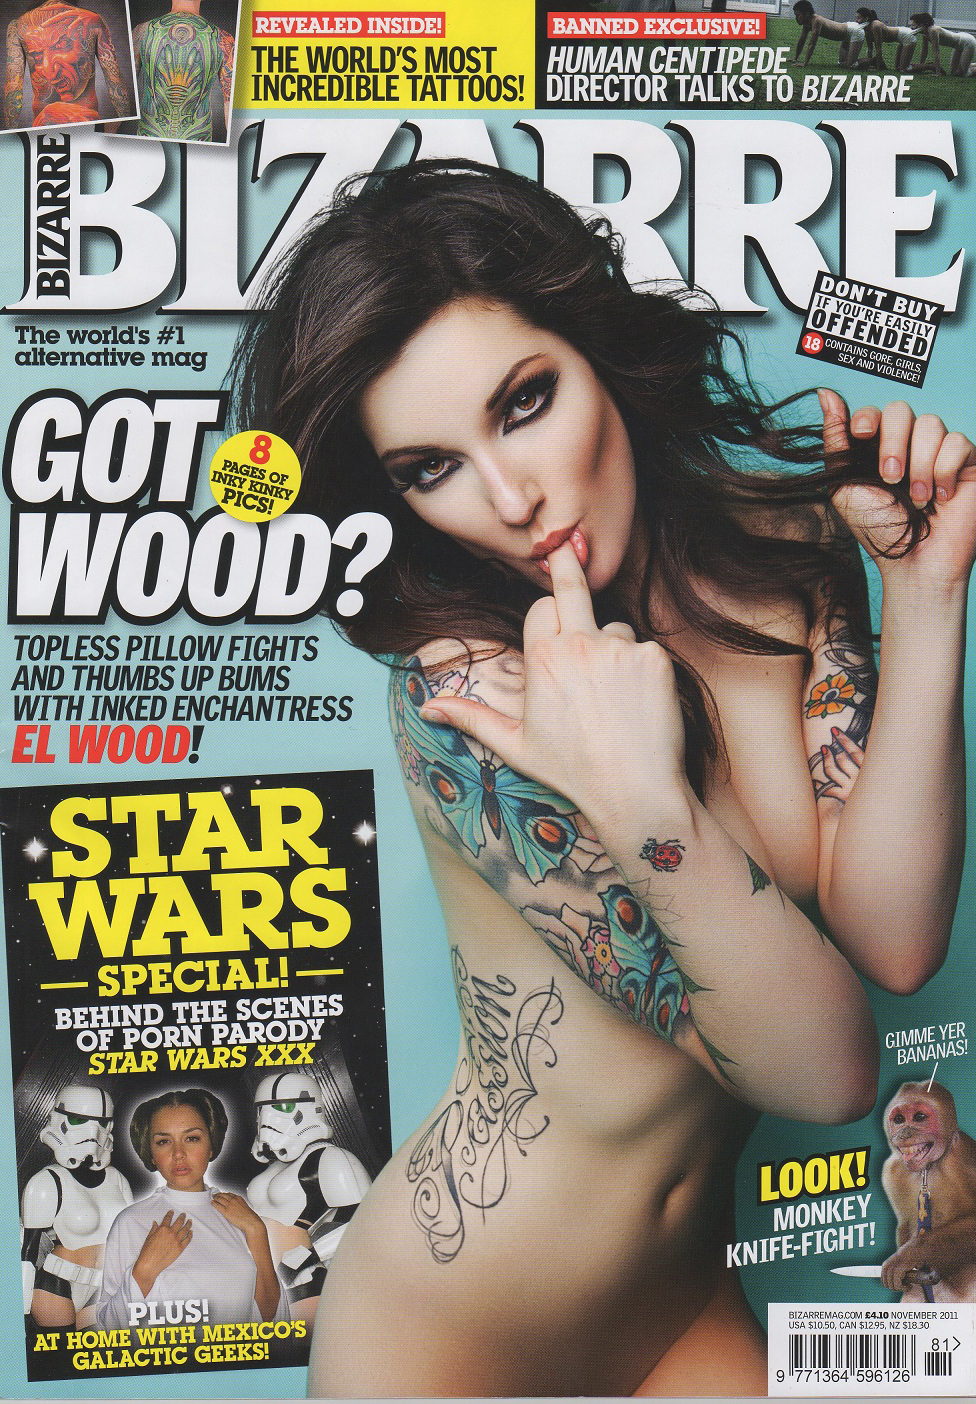 ... it features a GREAT article about thier visit to the Star Wars XXX set… ...